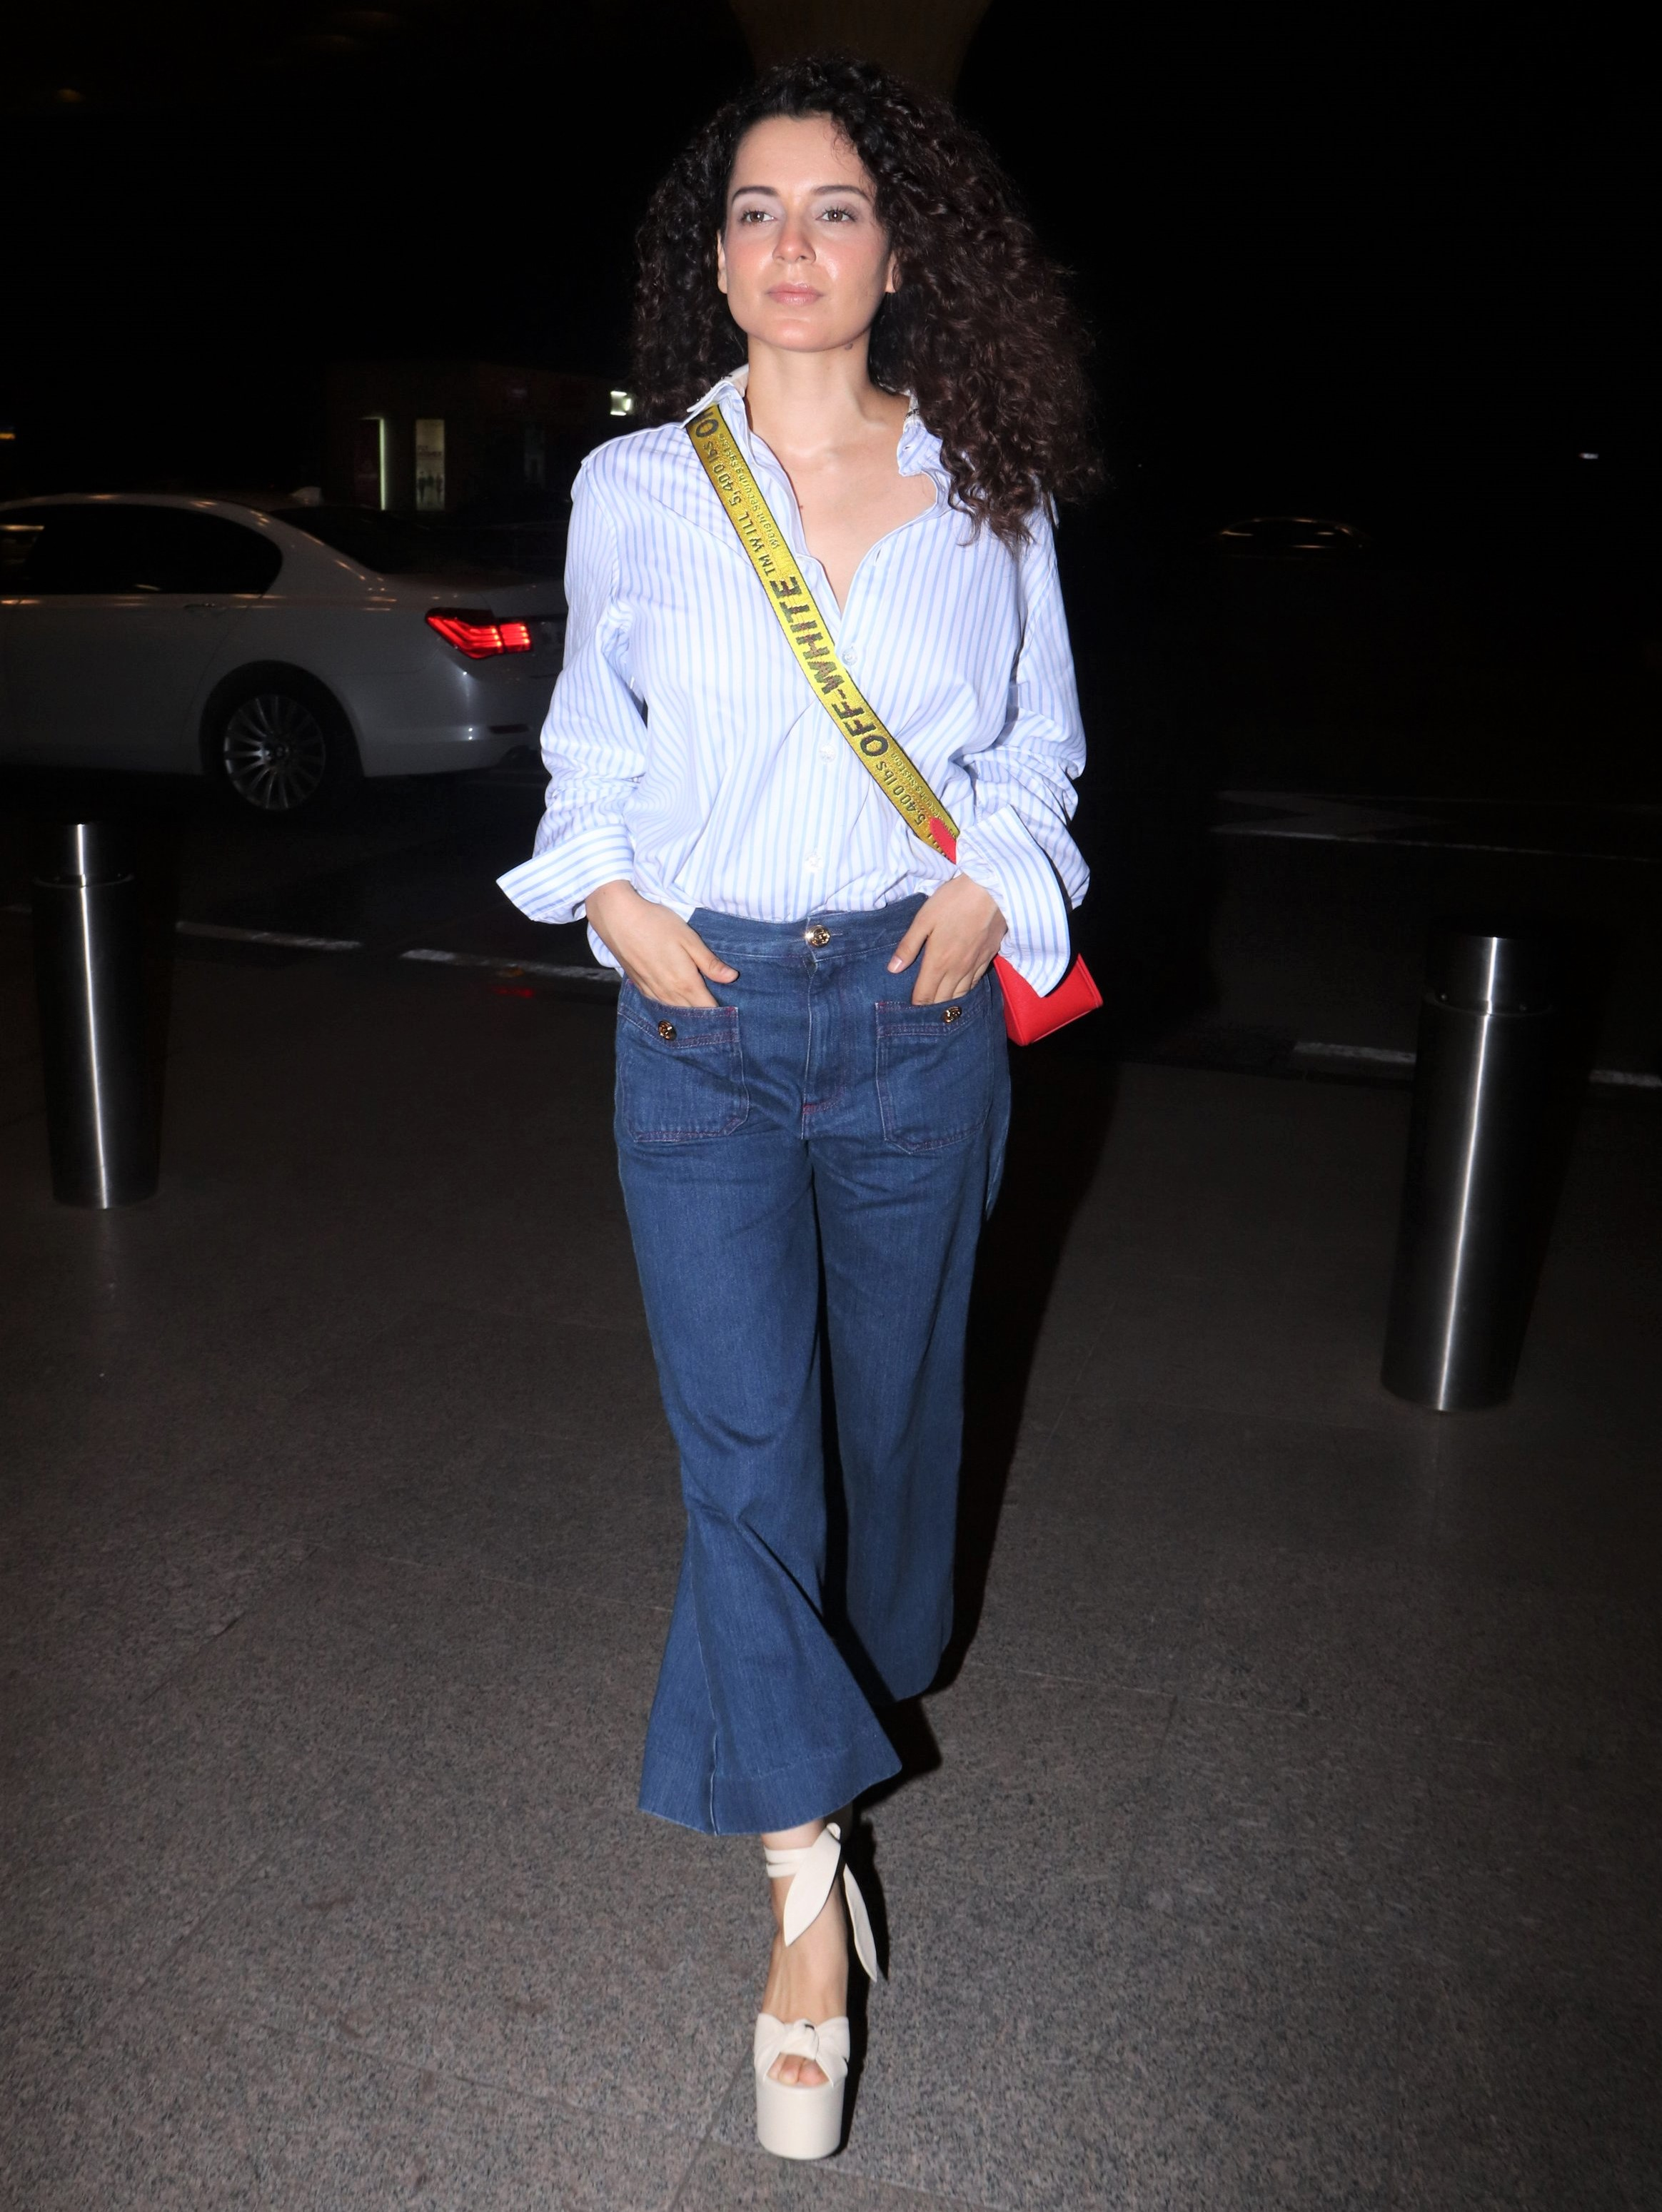 Cannes 2019: Kangana Ranaut Shows off Casual Airport Fashion Before Her Red Carpet Appearance